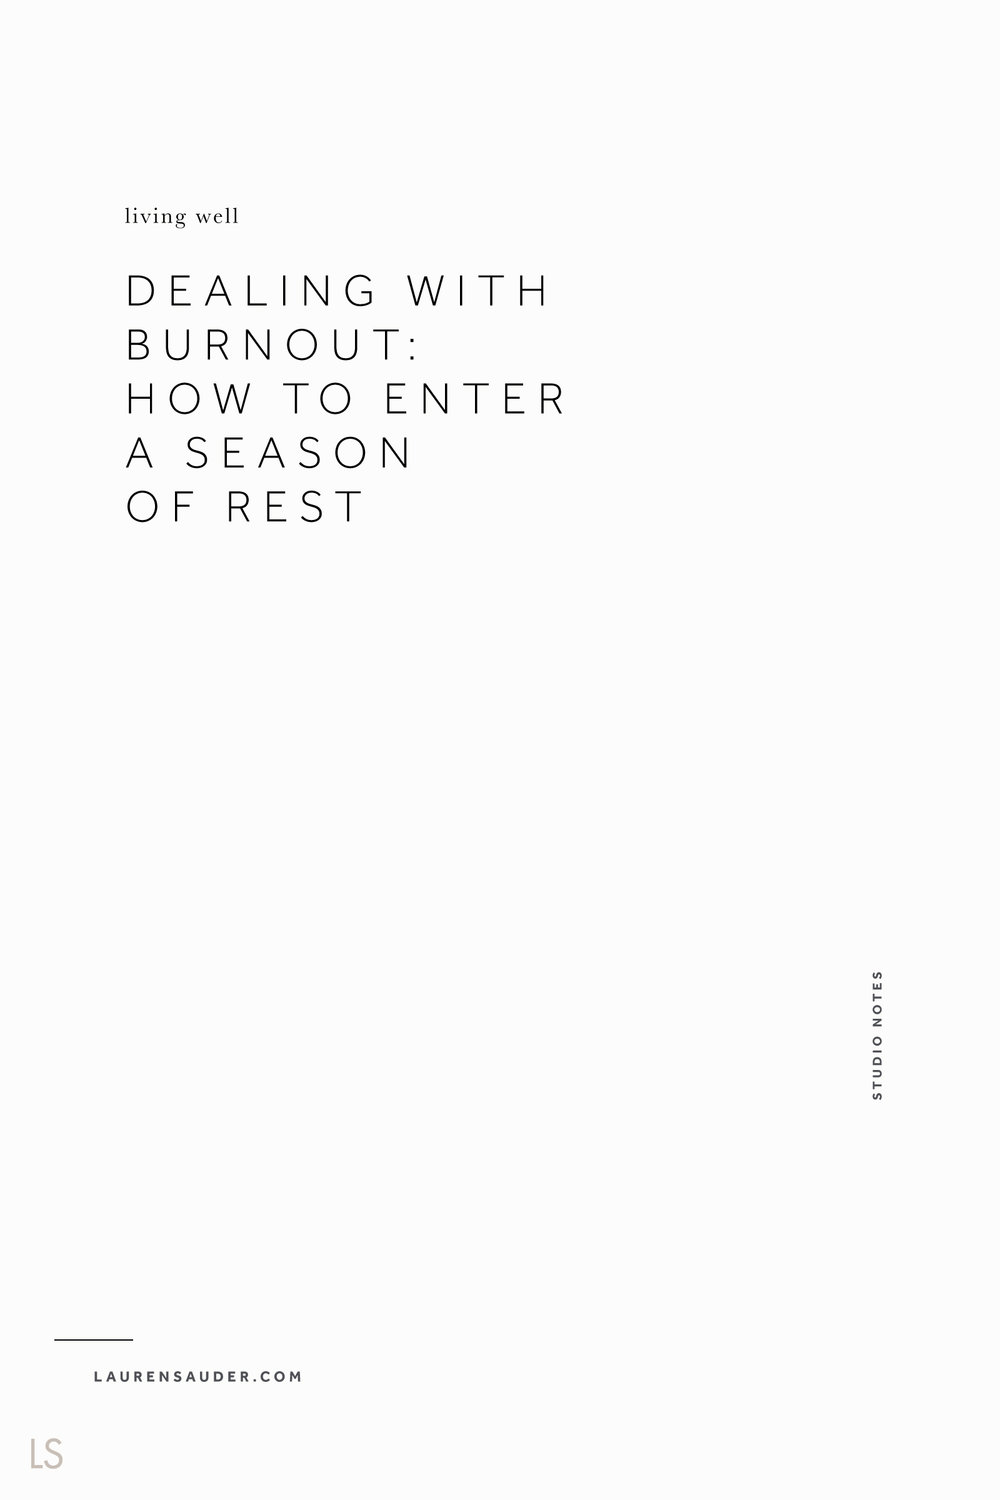 Dealing with Burnout: How to Enter a Season of Rest - Lauren Sauder #burnout #rest artist studio, creative entrepreneur, studio musings, season of rest, new year, new beginnings, goals